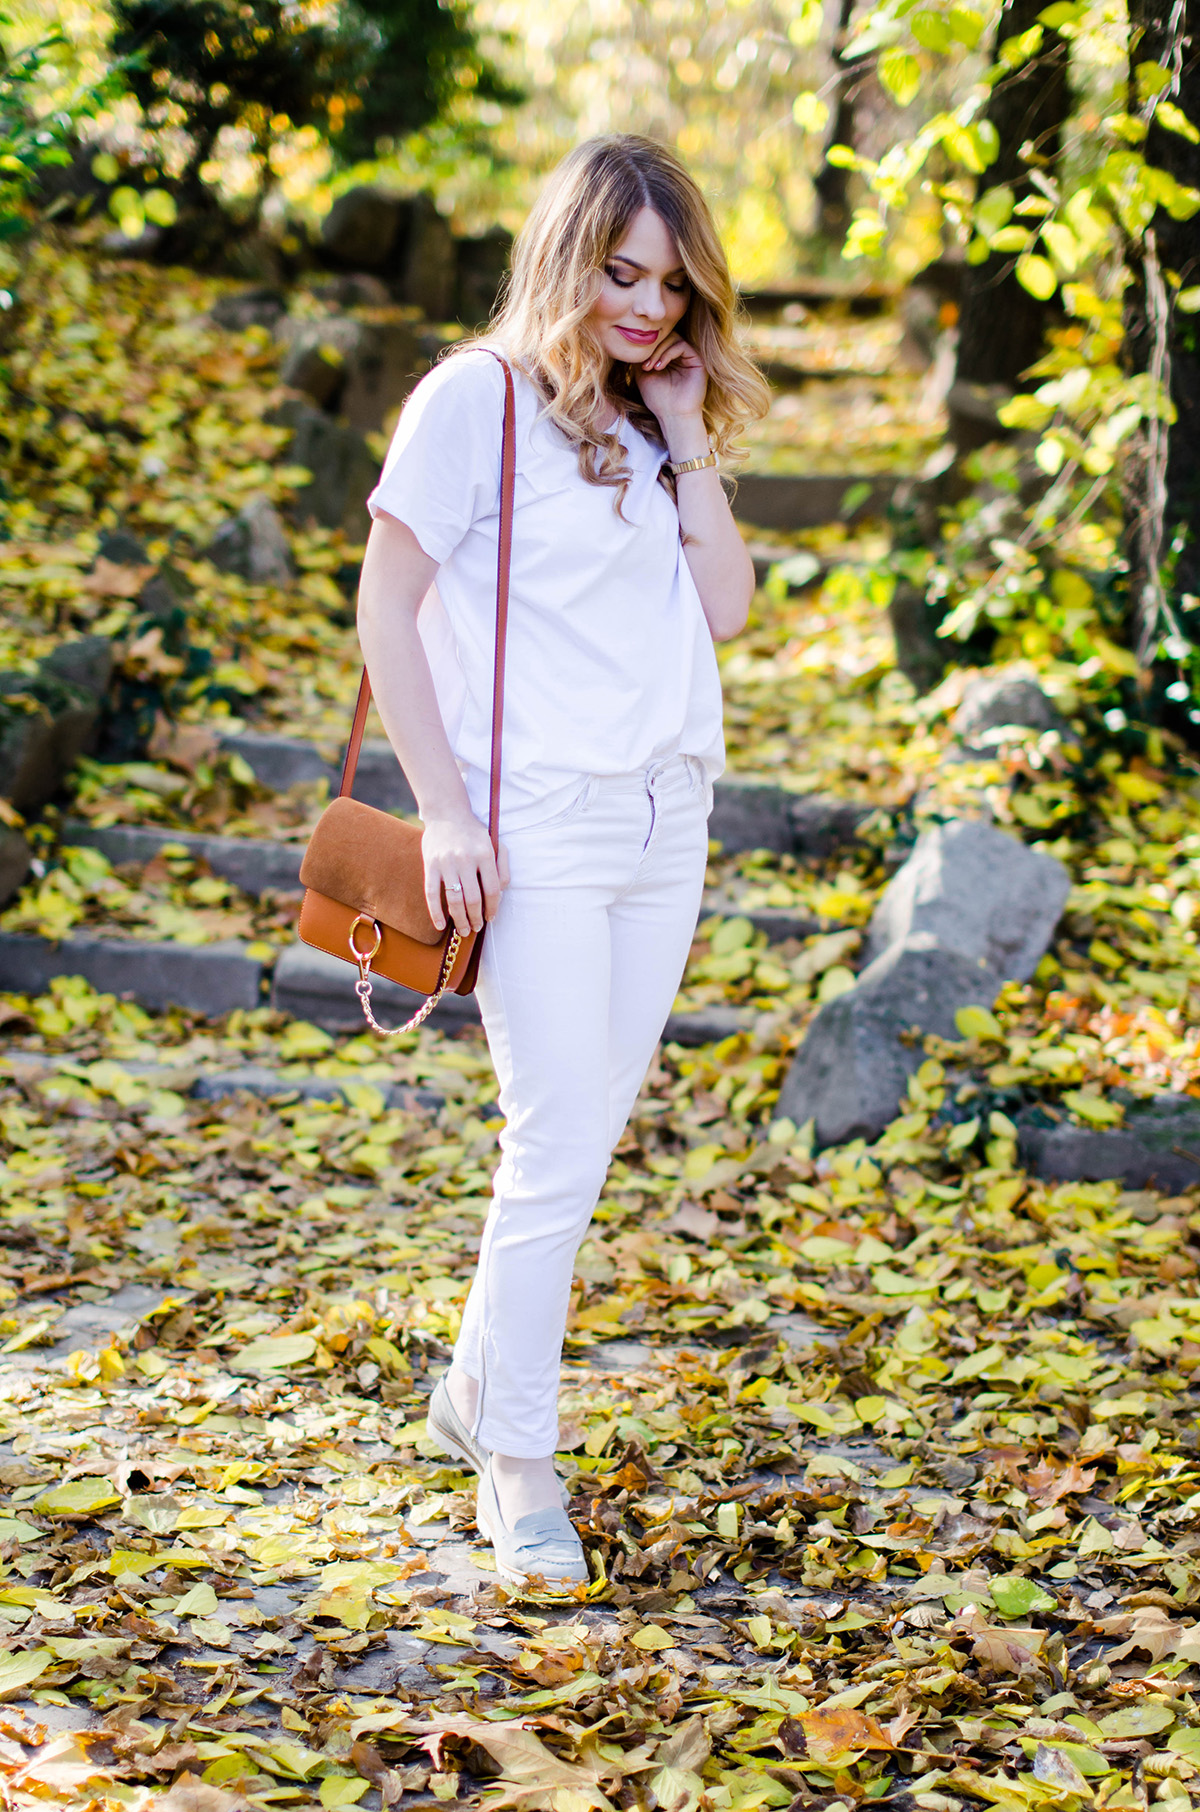 ALL-WHITE-OUTFIT-DENIM-JACKET-CHLOE-BAG-AUTUMN (6)